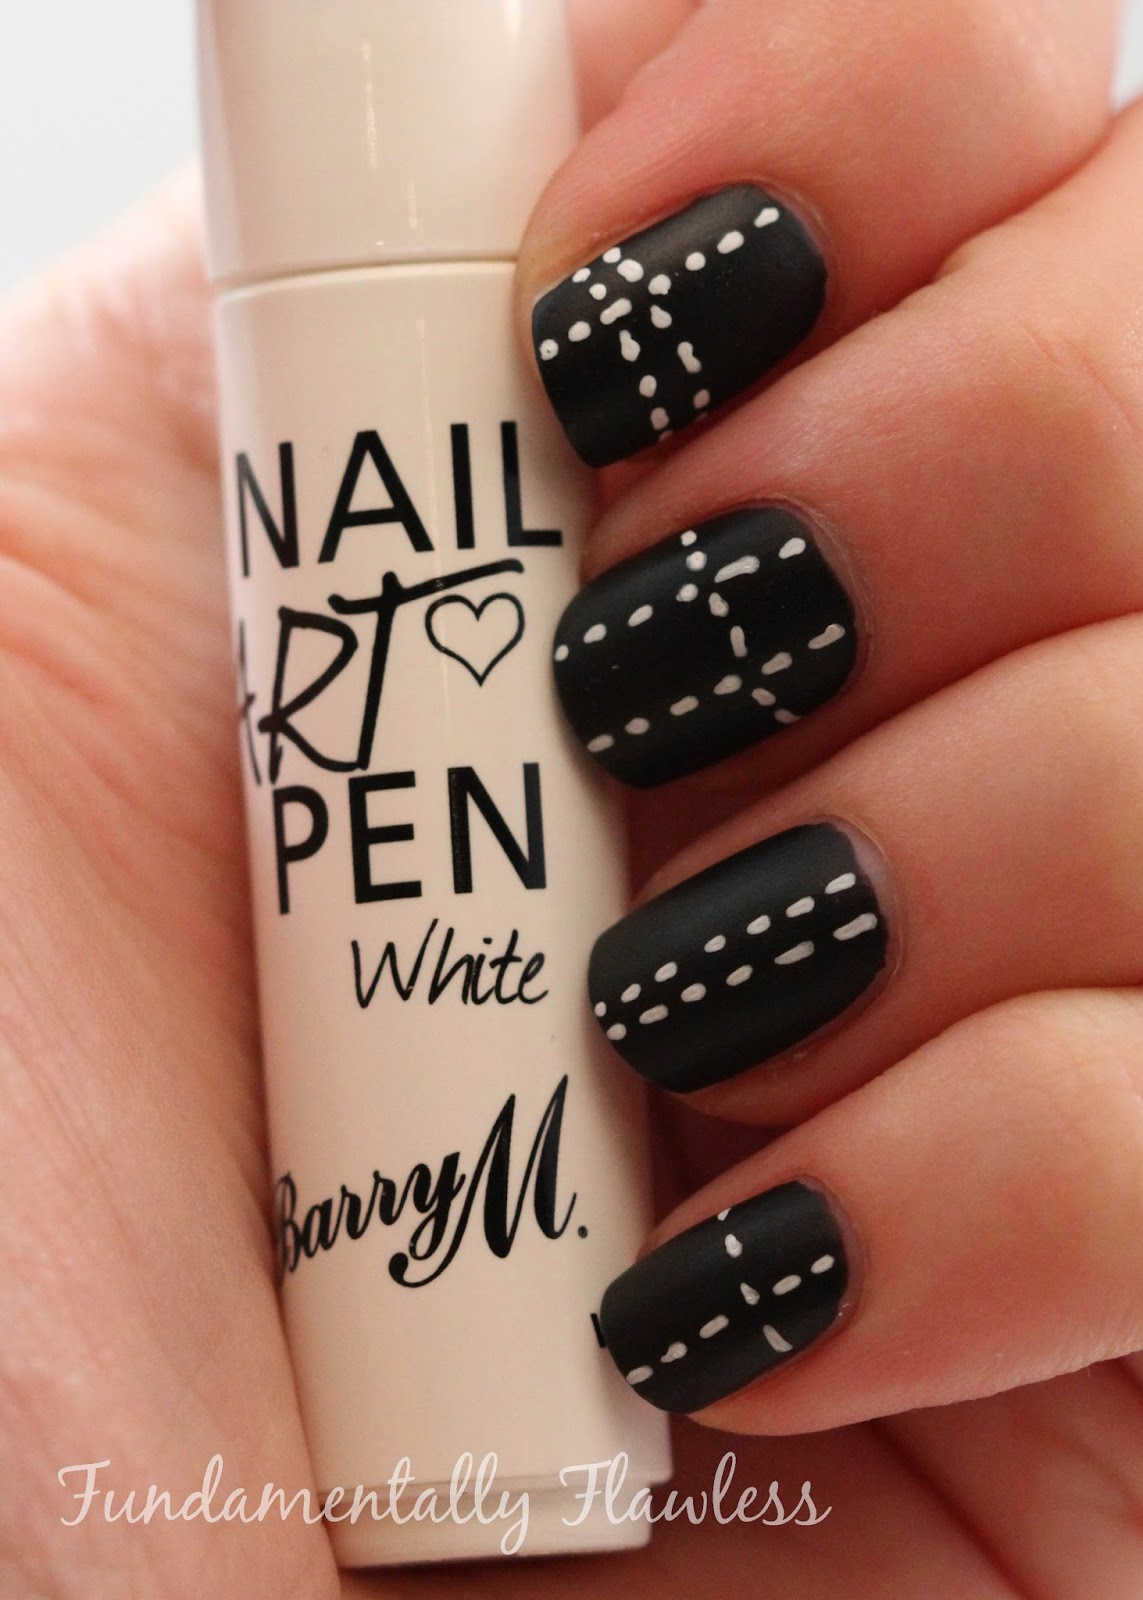 Fundamentally flawless barry m matte black with white stitches barry m matte black nail polish prinsesfo Gallery